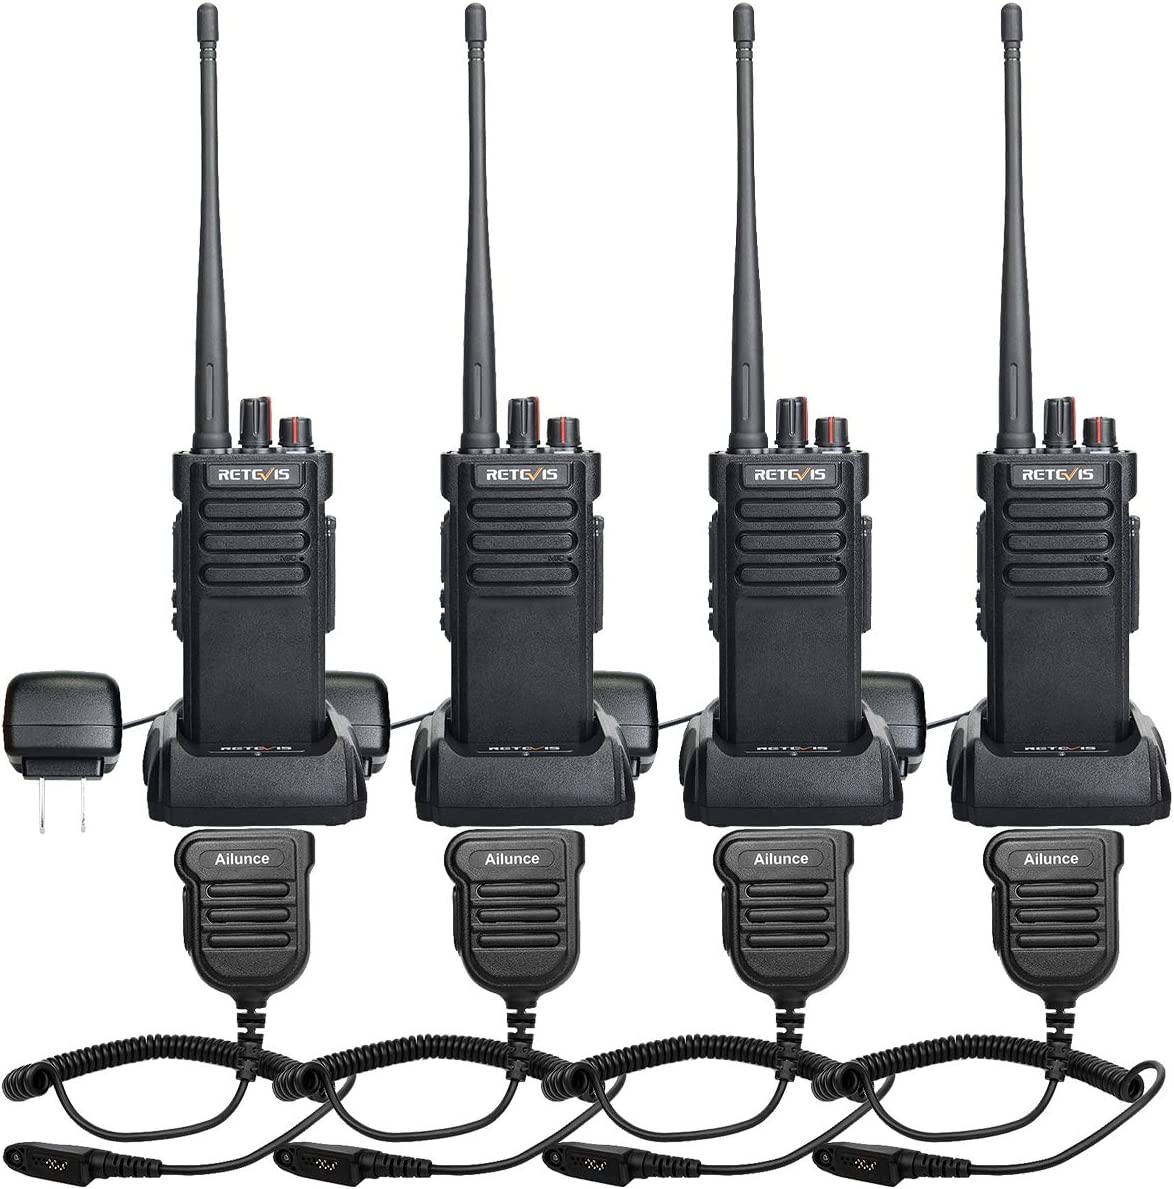 Retevis RT29 2 Way Radios Long Range UHF Radios 3200mAh 16 CH VOX Encryption Heavy Duty High Power Walkie Talkies with Waterproof Speak Mic (4 Pack)